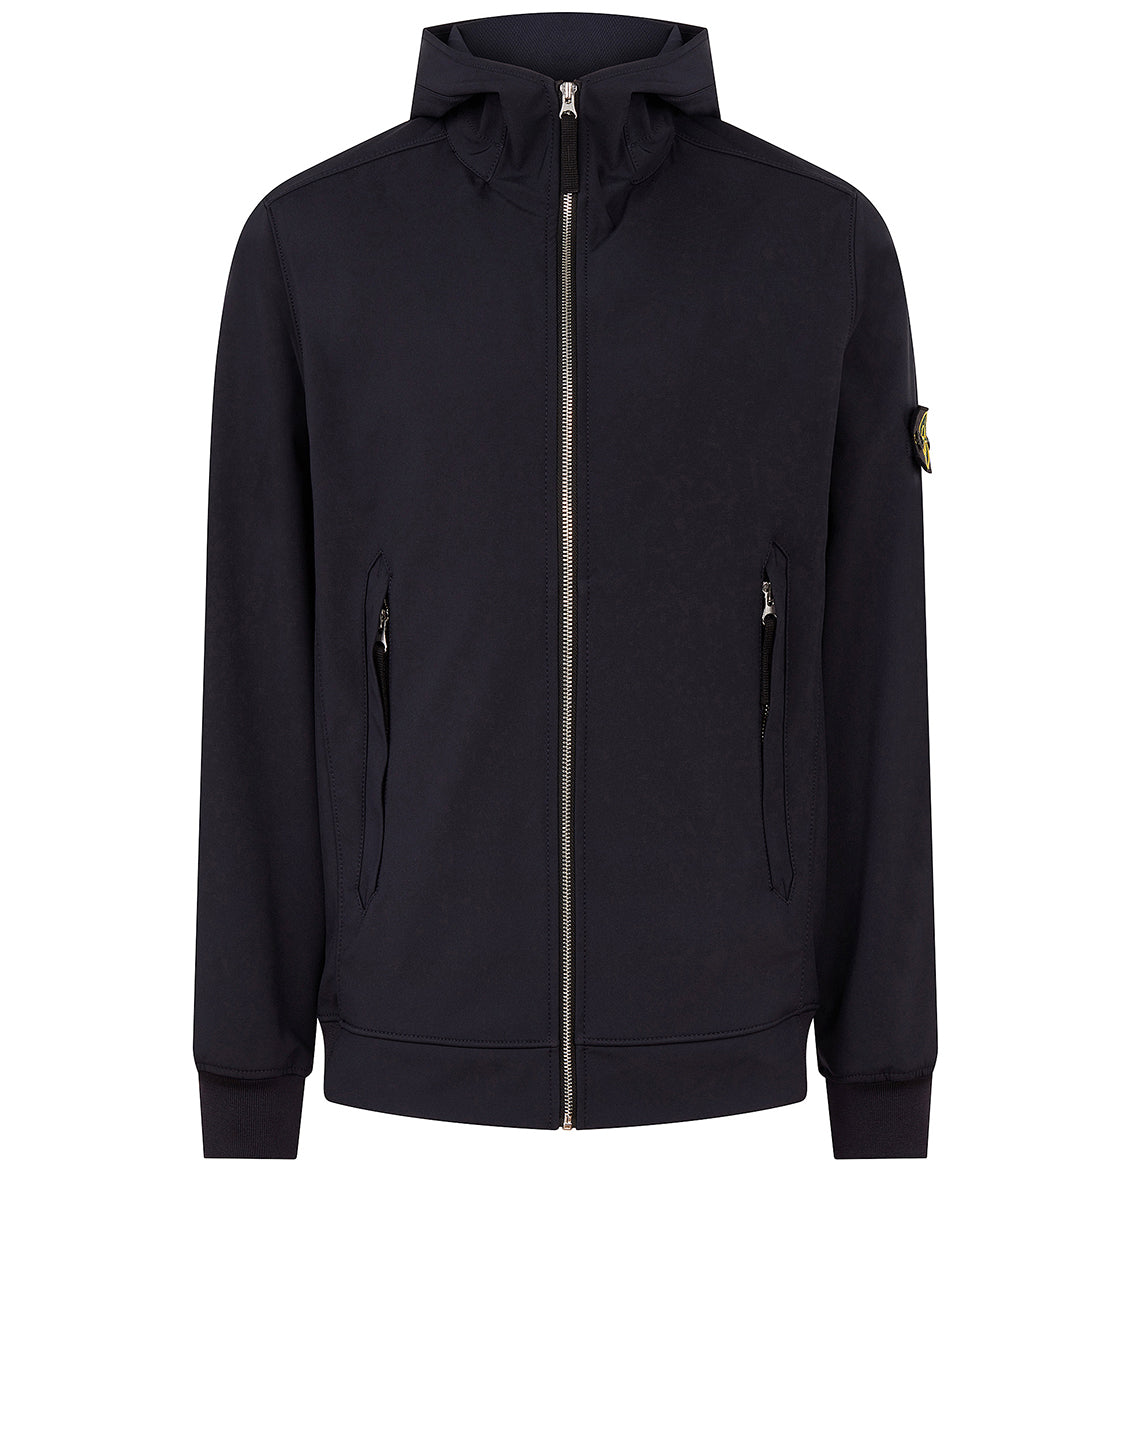 40927 LIGHT SOFT SHELL-R Jacket in Navy Blue